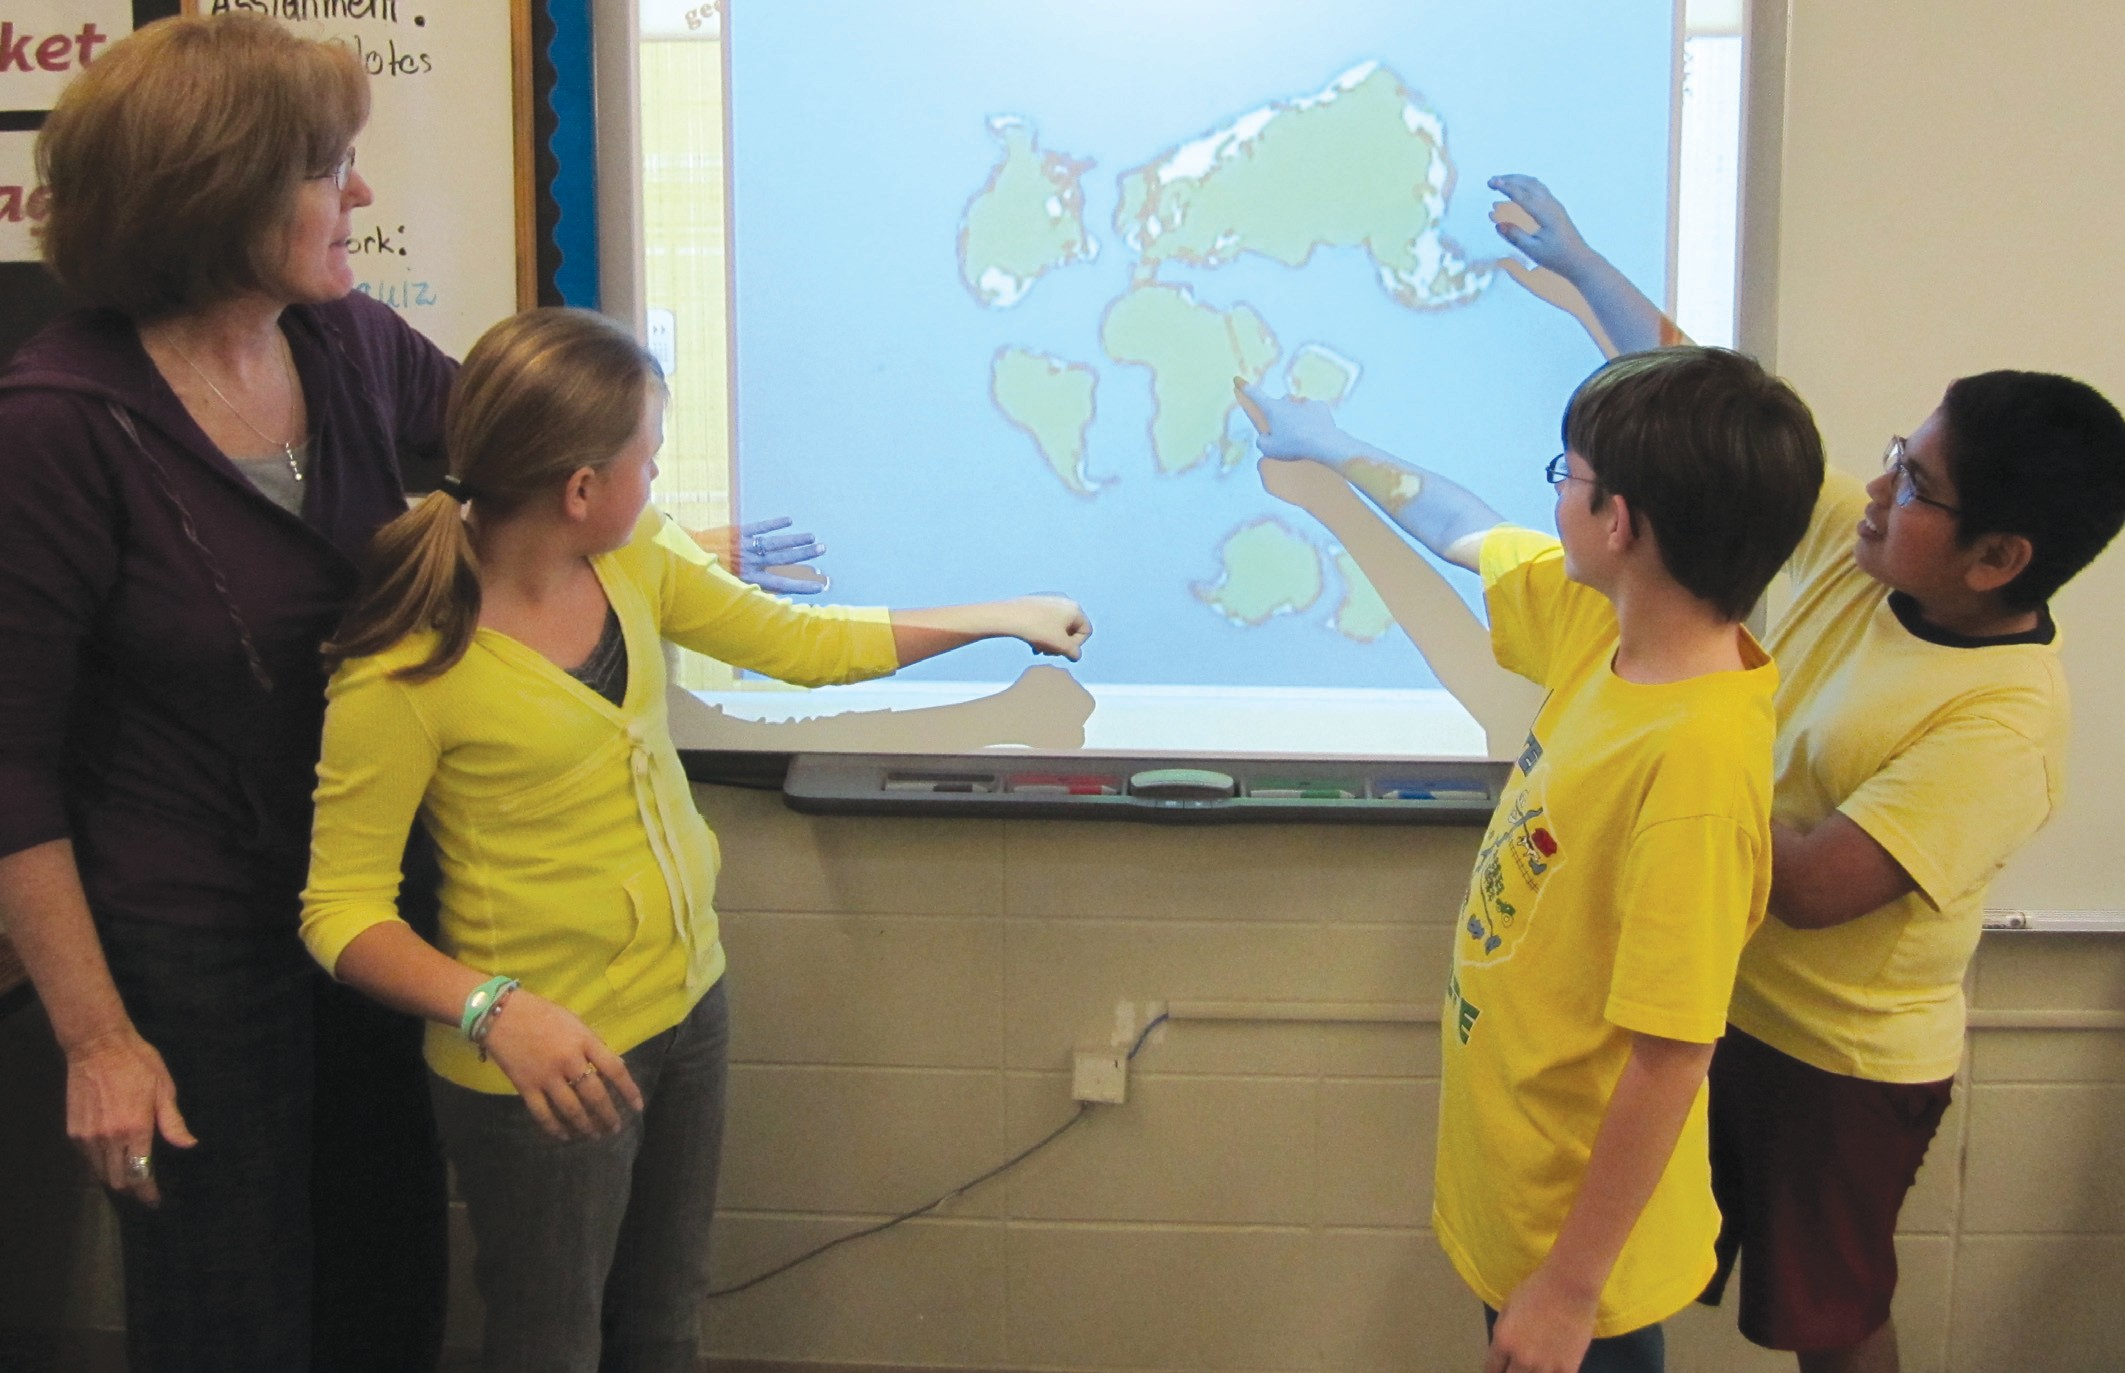 Cleveland sixth-grade teacher Claire Hornsby (from left) works with students Haley Shrewsberry, Tyler Washburn, and Luz Elizarraraz on a SMART Board showing an animated geography sequence. The sequence shows the separation over millions of years of the supercontinent Pangaea into the seven continents we know today. The boards are used to integrate all pictorial and textual material, including the Internet, to help students perform better in reading, math, science, and social studies. A cast of thousands (not literally) met after school Monday at Cleveland Elementary to celebrate a signal event: the school now has a SMART Board in every one of its 30-odd classrooms, representing an investment of some $66,000 over the last several years. Money for the sizable project came from several sources: the Blount County state Legislative delegation, educational grants, the Blount County Board of Education, CAWACO Resource Conservation and Development agency, and especially participation by Cleveland teachers, many of whom contributed their scanty classroom instructional supplies and technology funds for several years toward the project. CAWACO contributed $11,000 for the SMART Boards over the course of the project, including the final contribution, a $5000 check presented to the school earlier this week. Two teachers were singled out by Cleveland Elementary principal David Bradford for special recognition for their contributions to the project: second grade teacher Annette Protz and reading coach Linda Johnson. – Ron Gholson